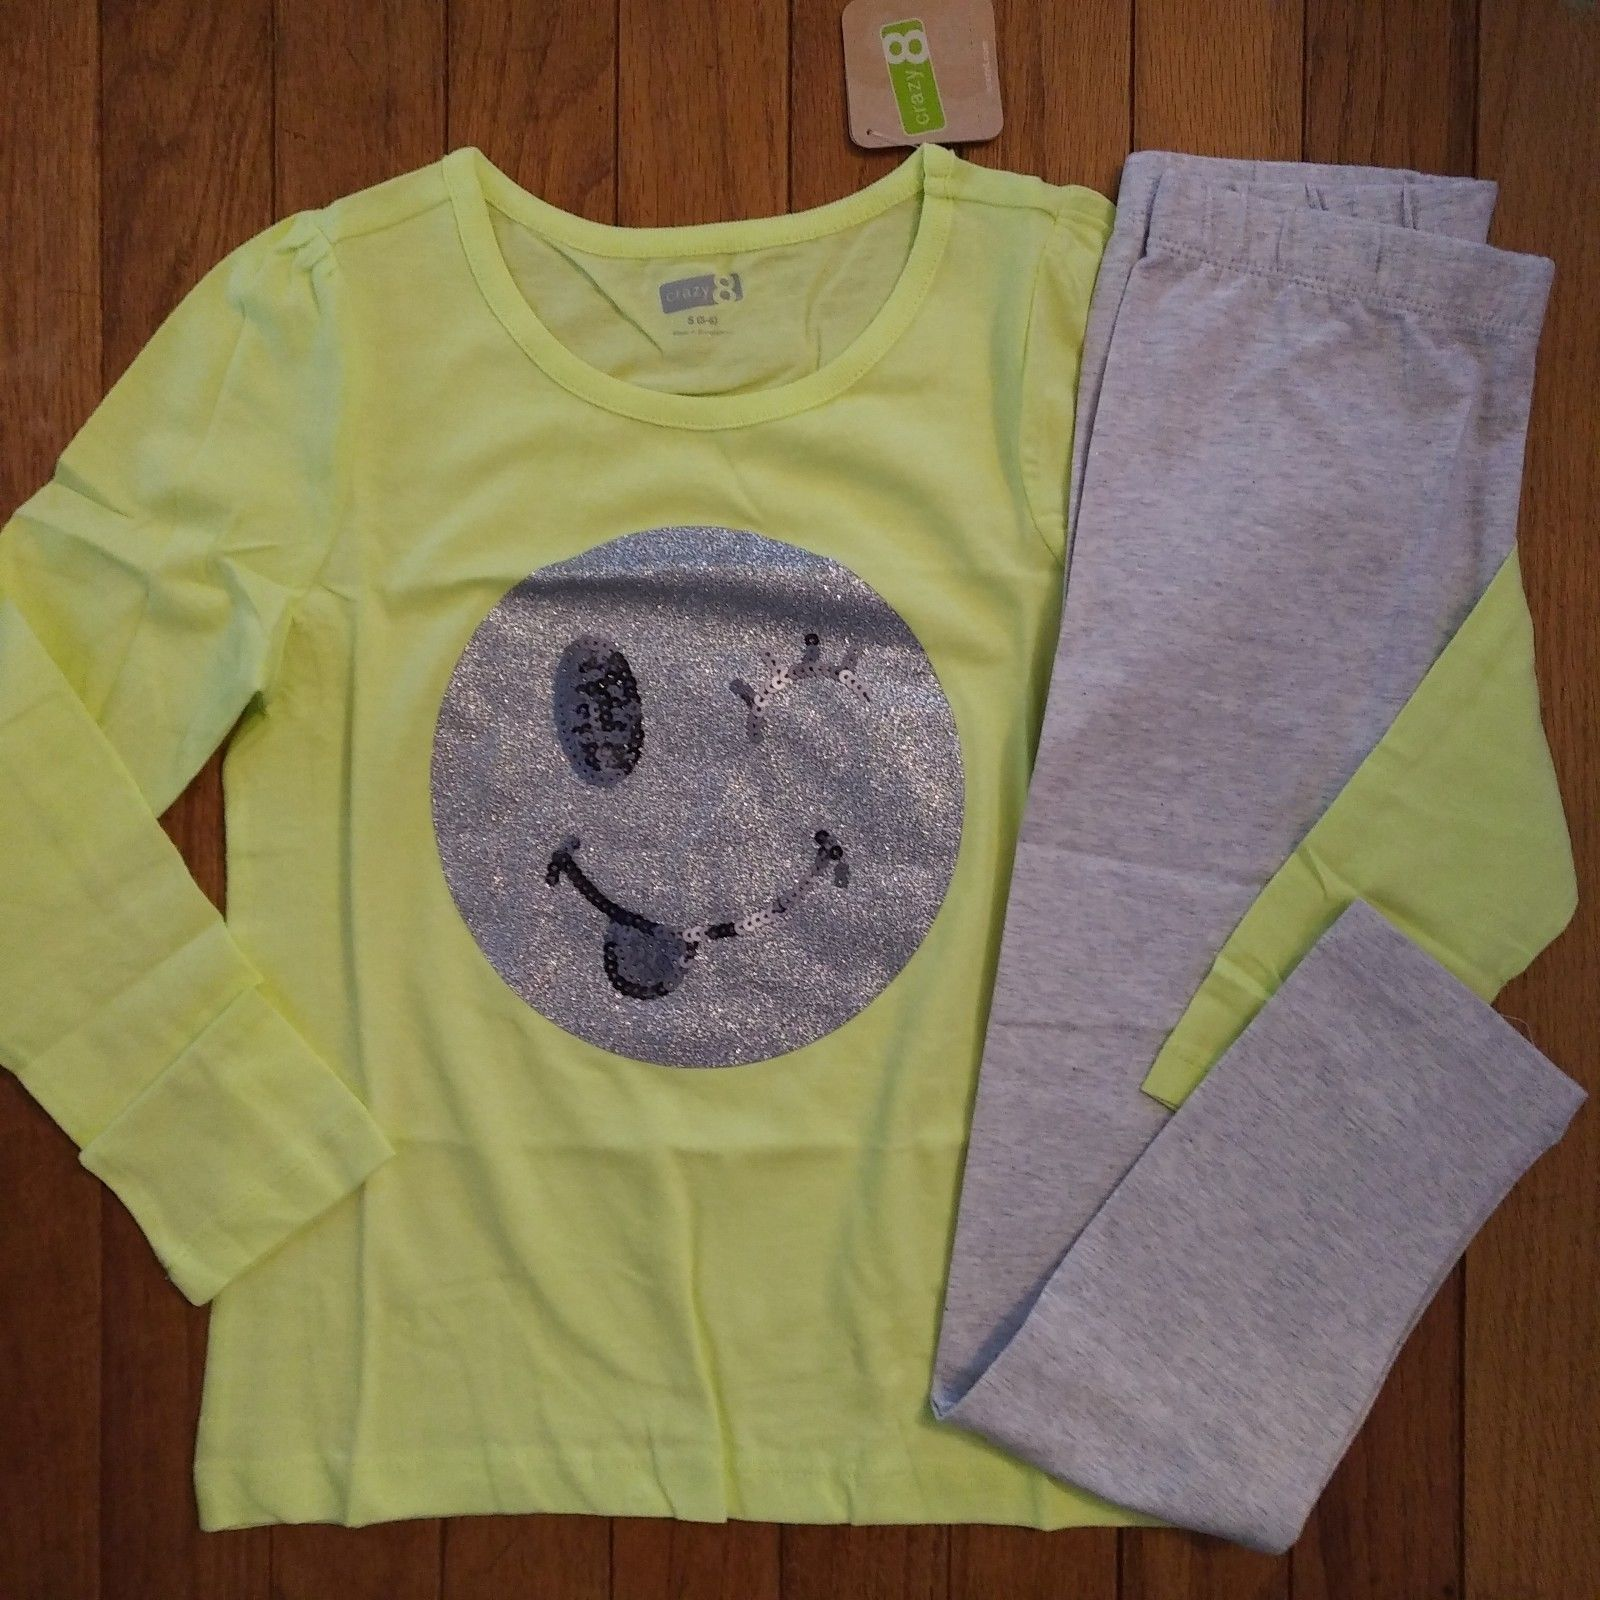 84f9497e5ae44 Outfits and Sets 156801: Nwt Gymboree Crazy 8 Girls Emoji Sparkle Top Gray  Leggings Size